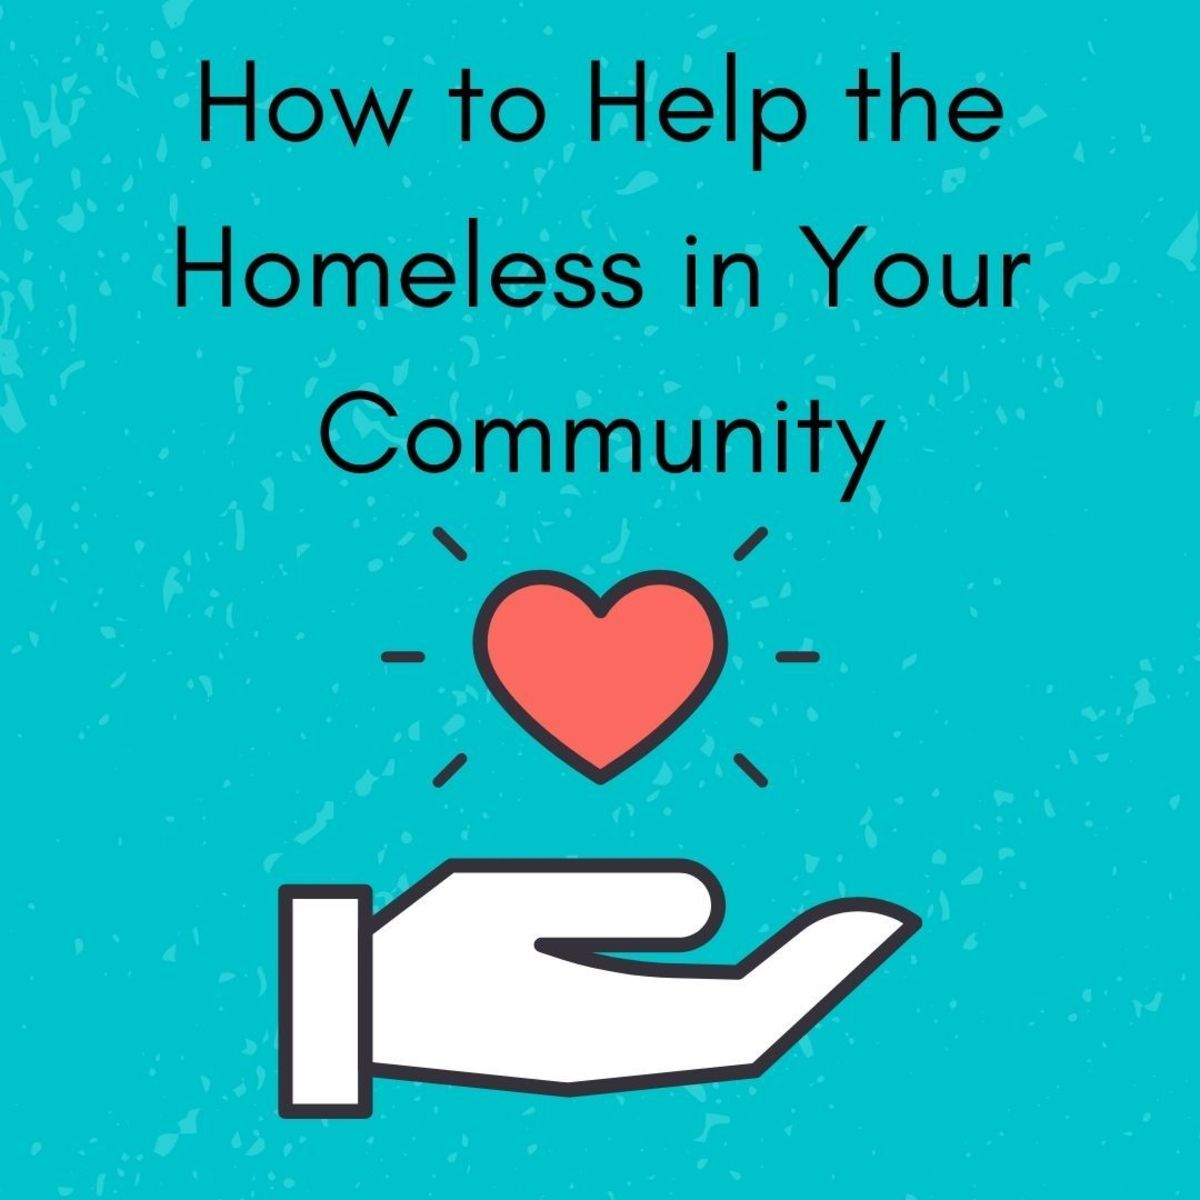 Bring citizens—both housed and homeless—together can help bring about real change to the community.